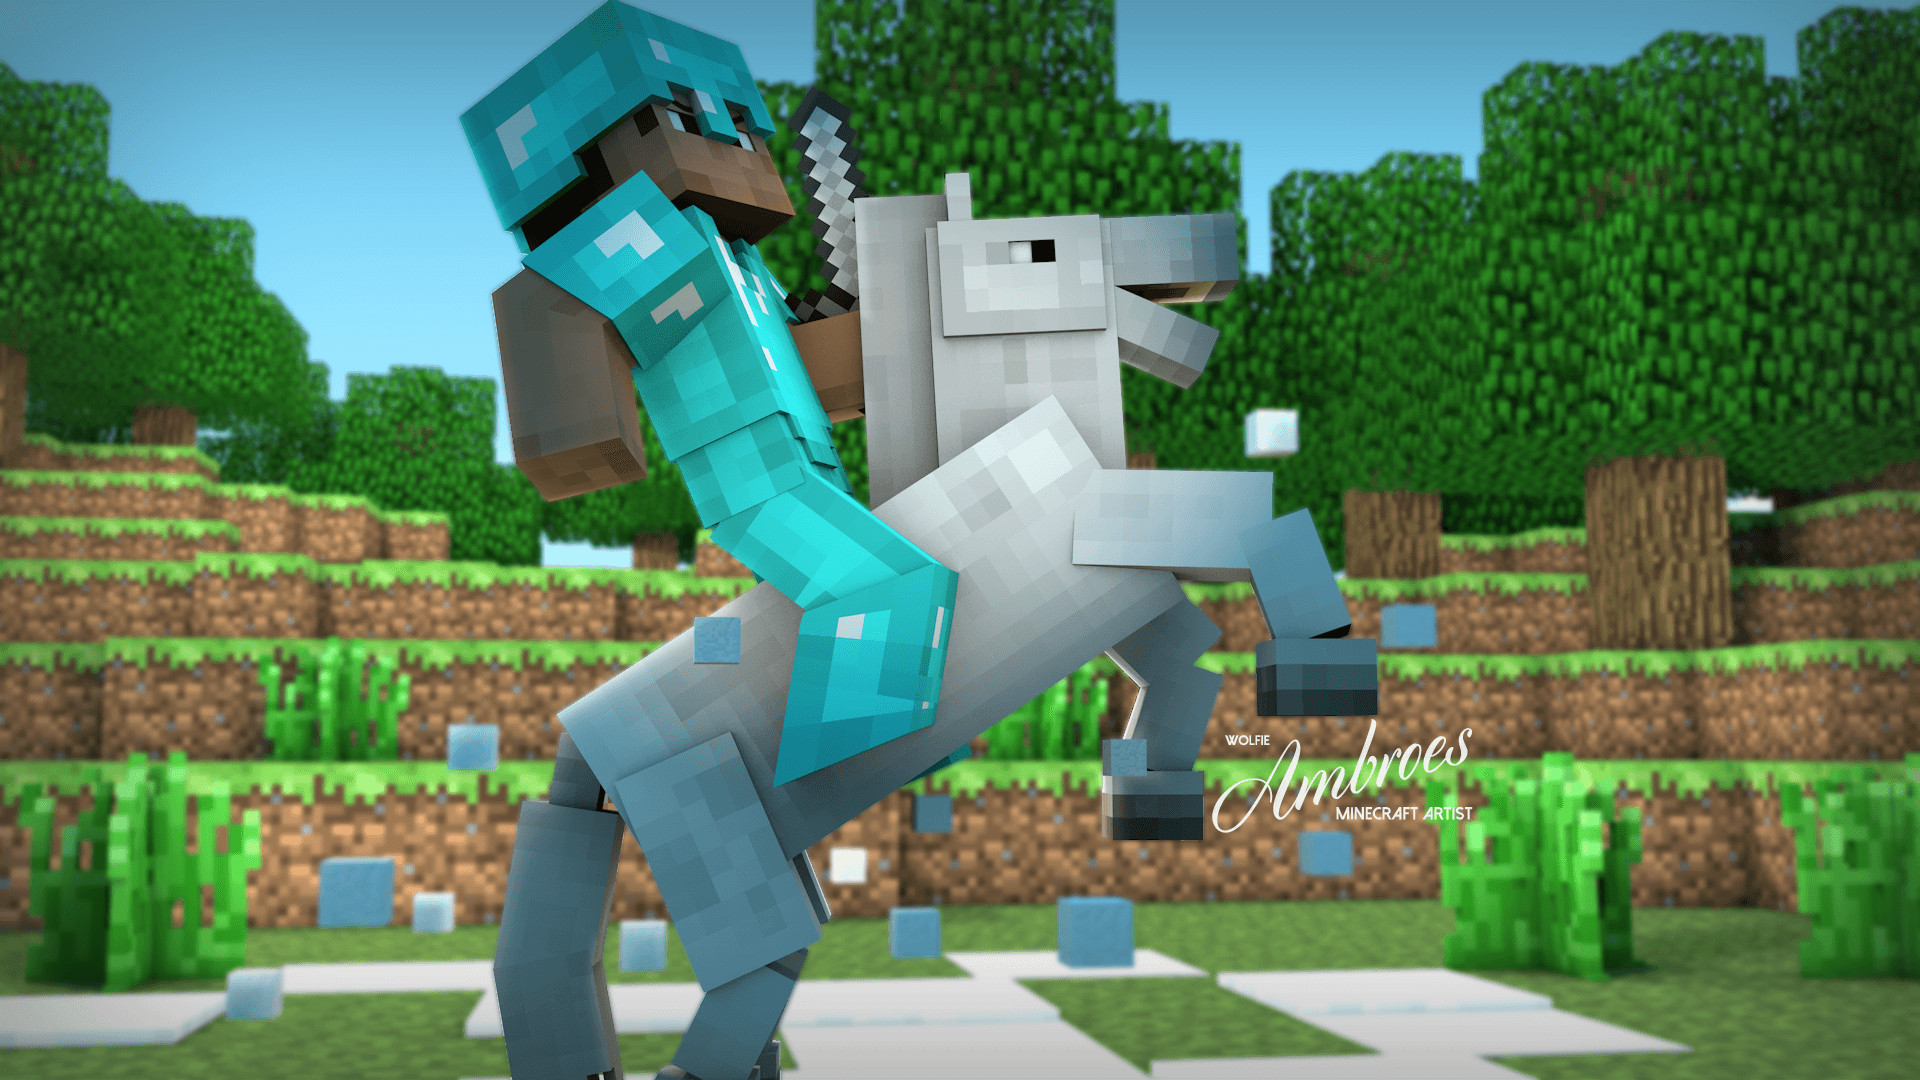 Cool Wallpaper Minecraft Cellphone - 988199-gorgerous-minecraft-wallpaper-hd-1920x1080-mobile  You Should Have_906774.jpg